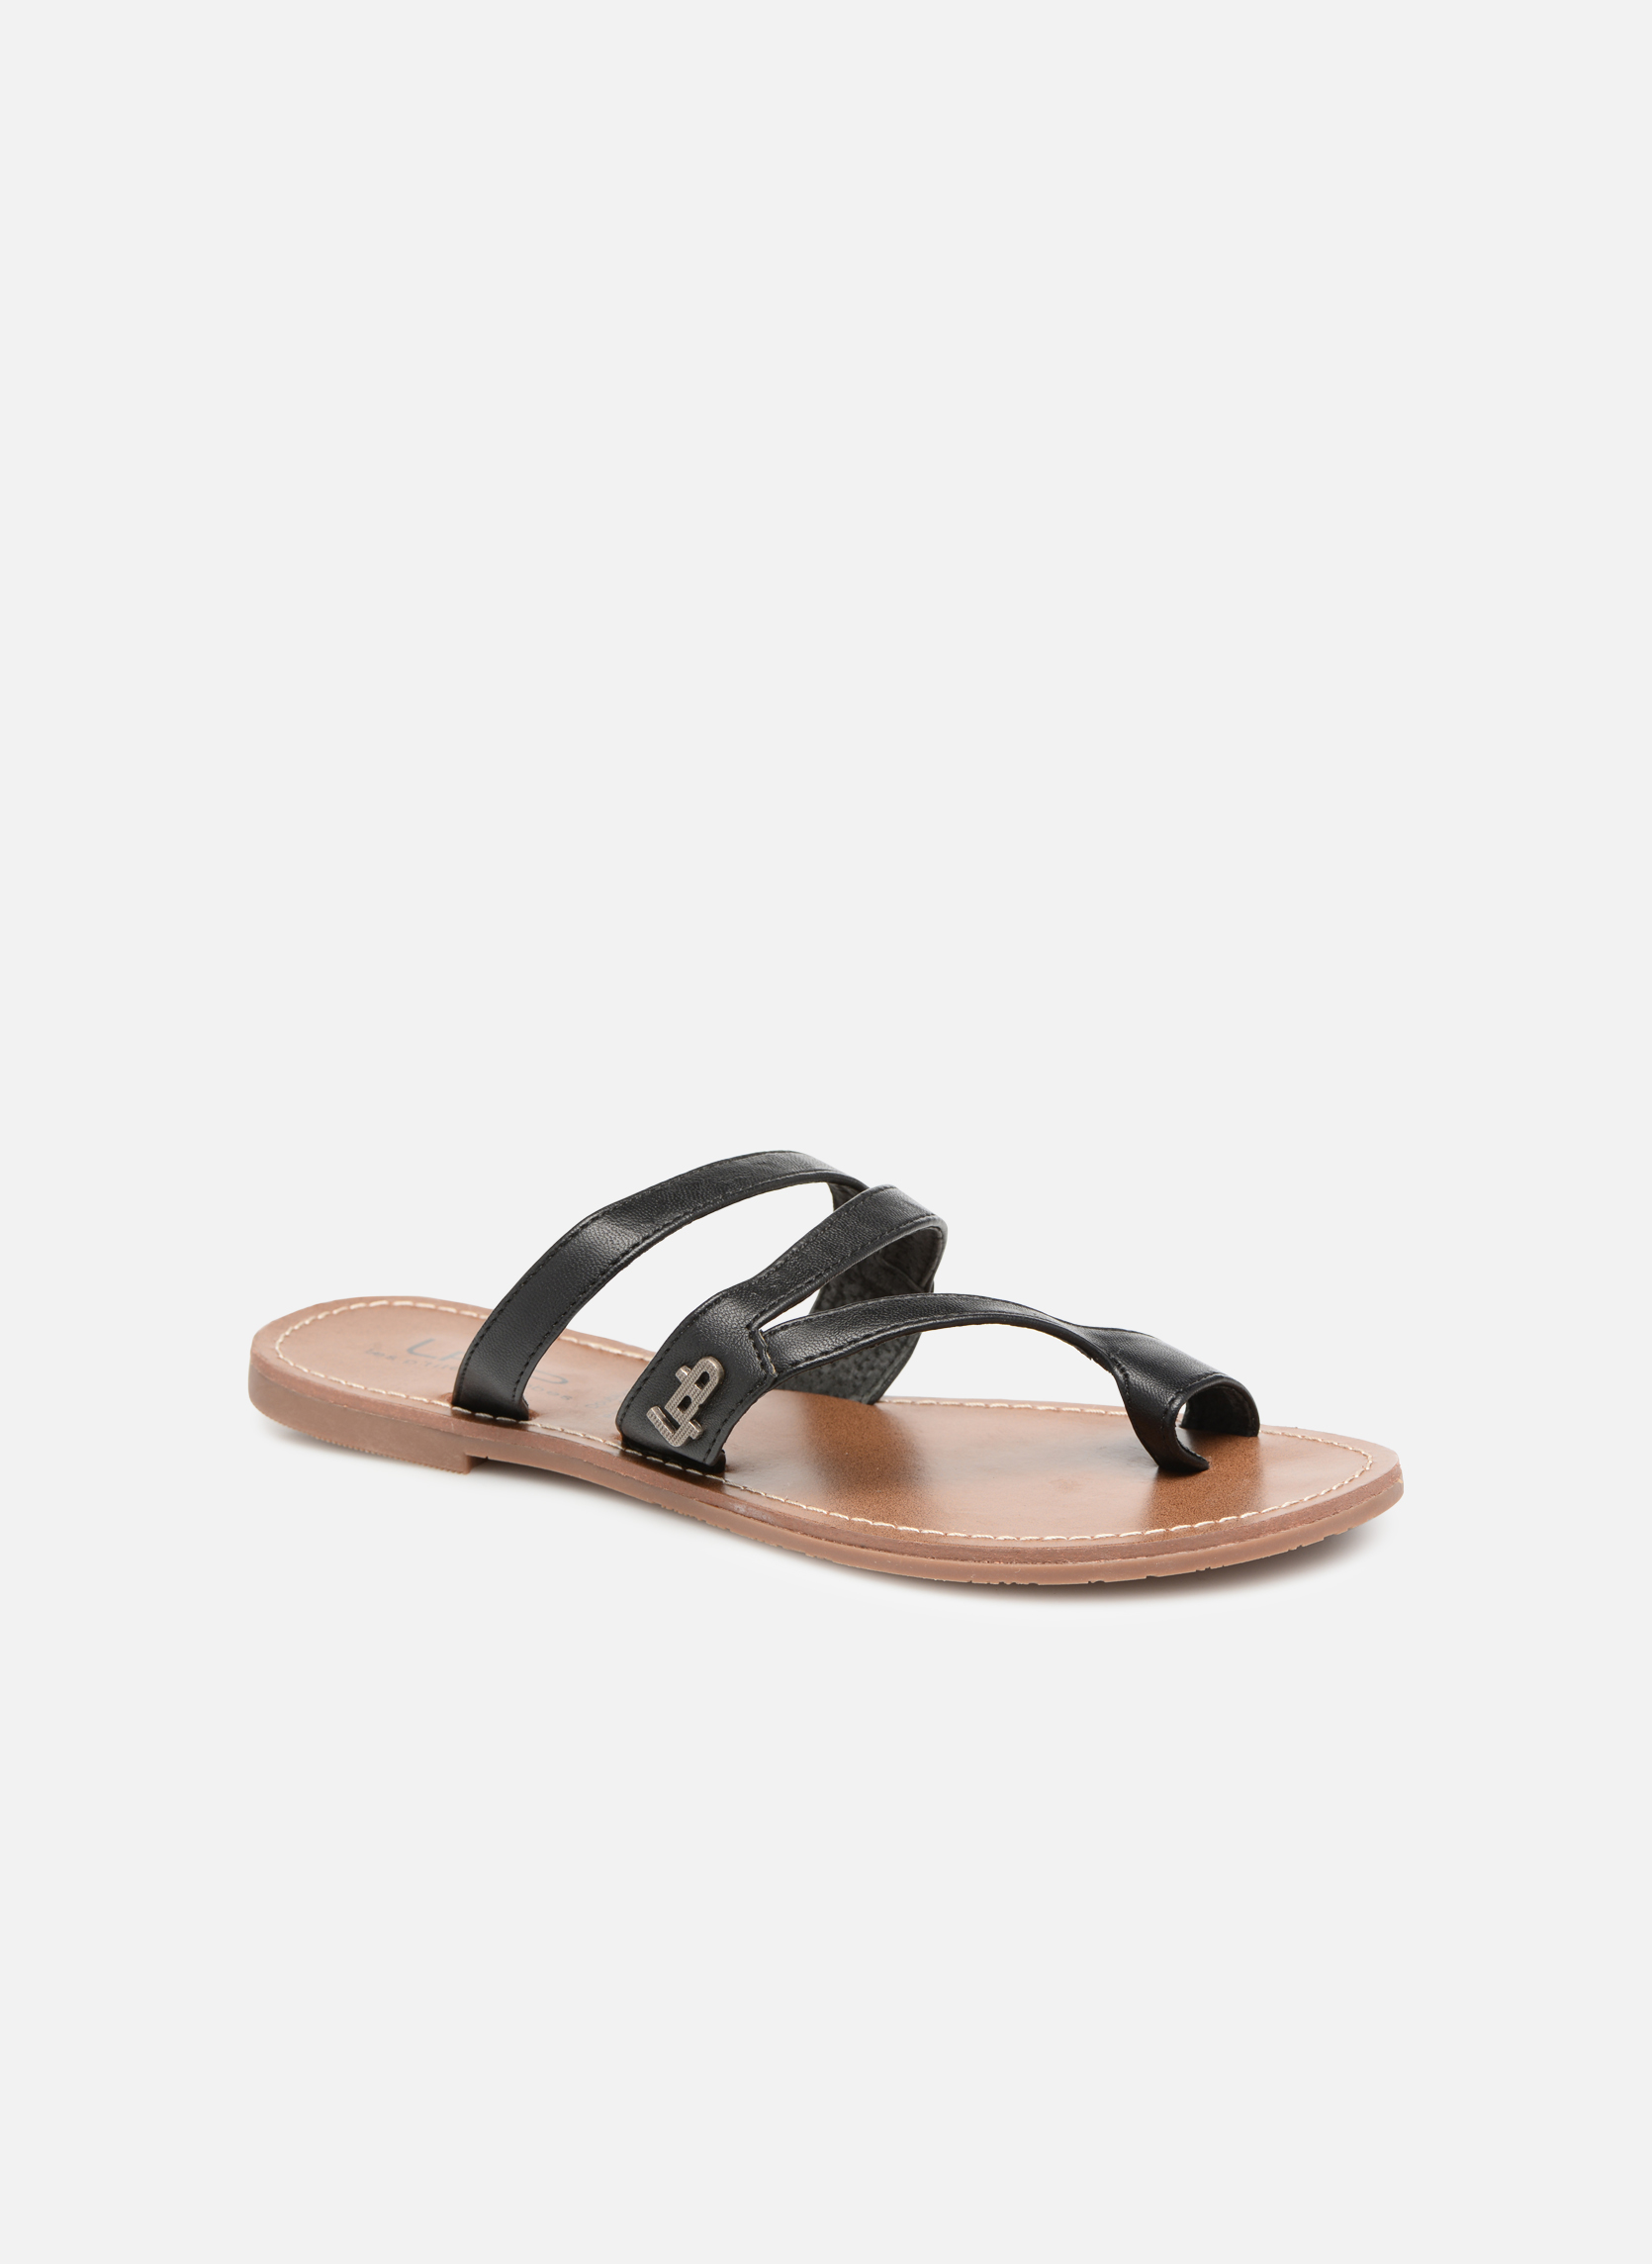 Sandalen Dames Texane